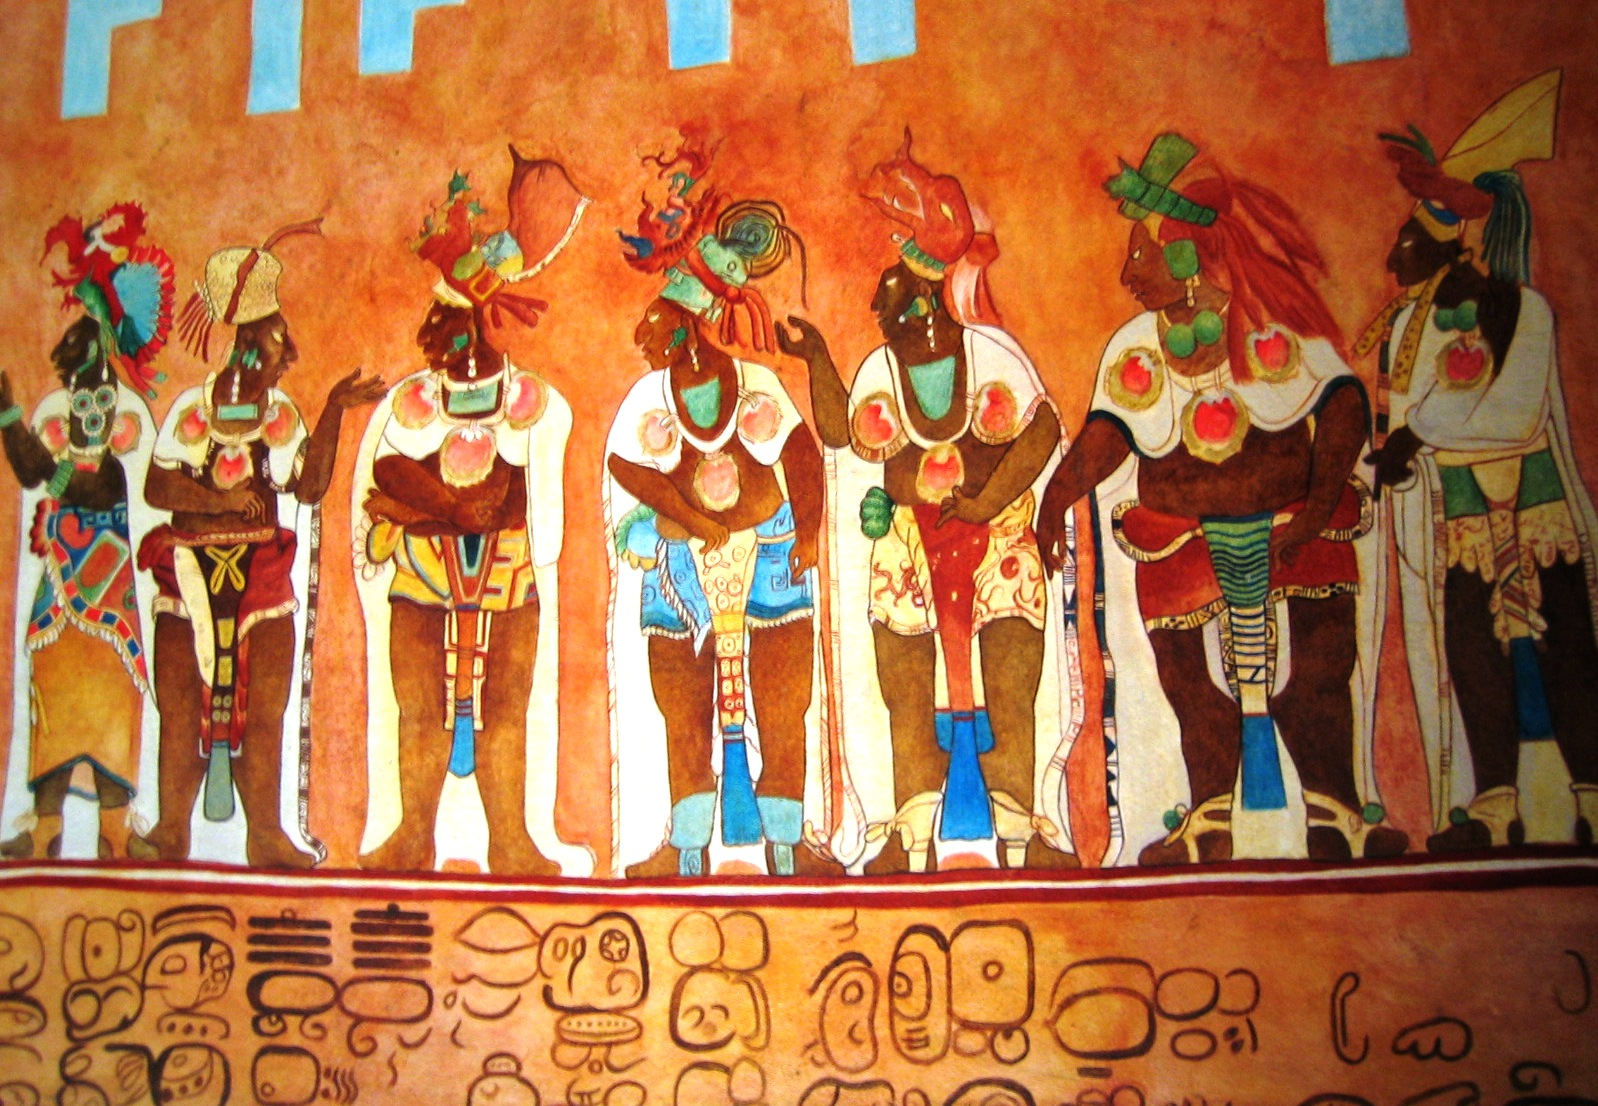 Pin bonampak mural no 1 on pinterest for Bonampak mural painting